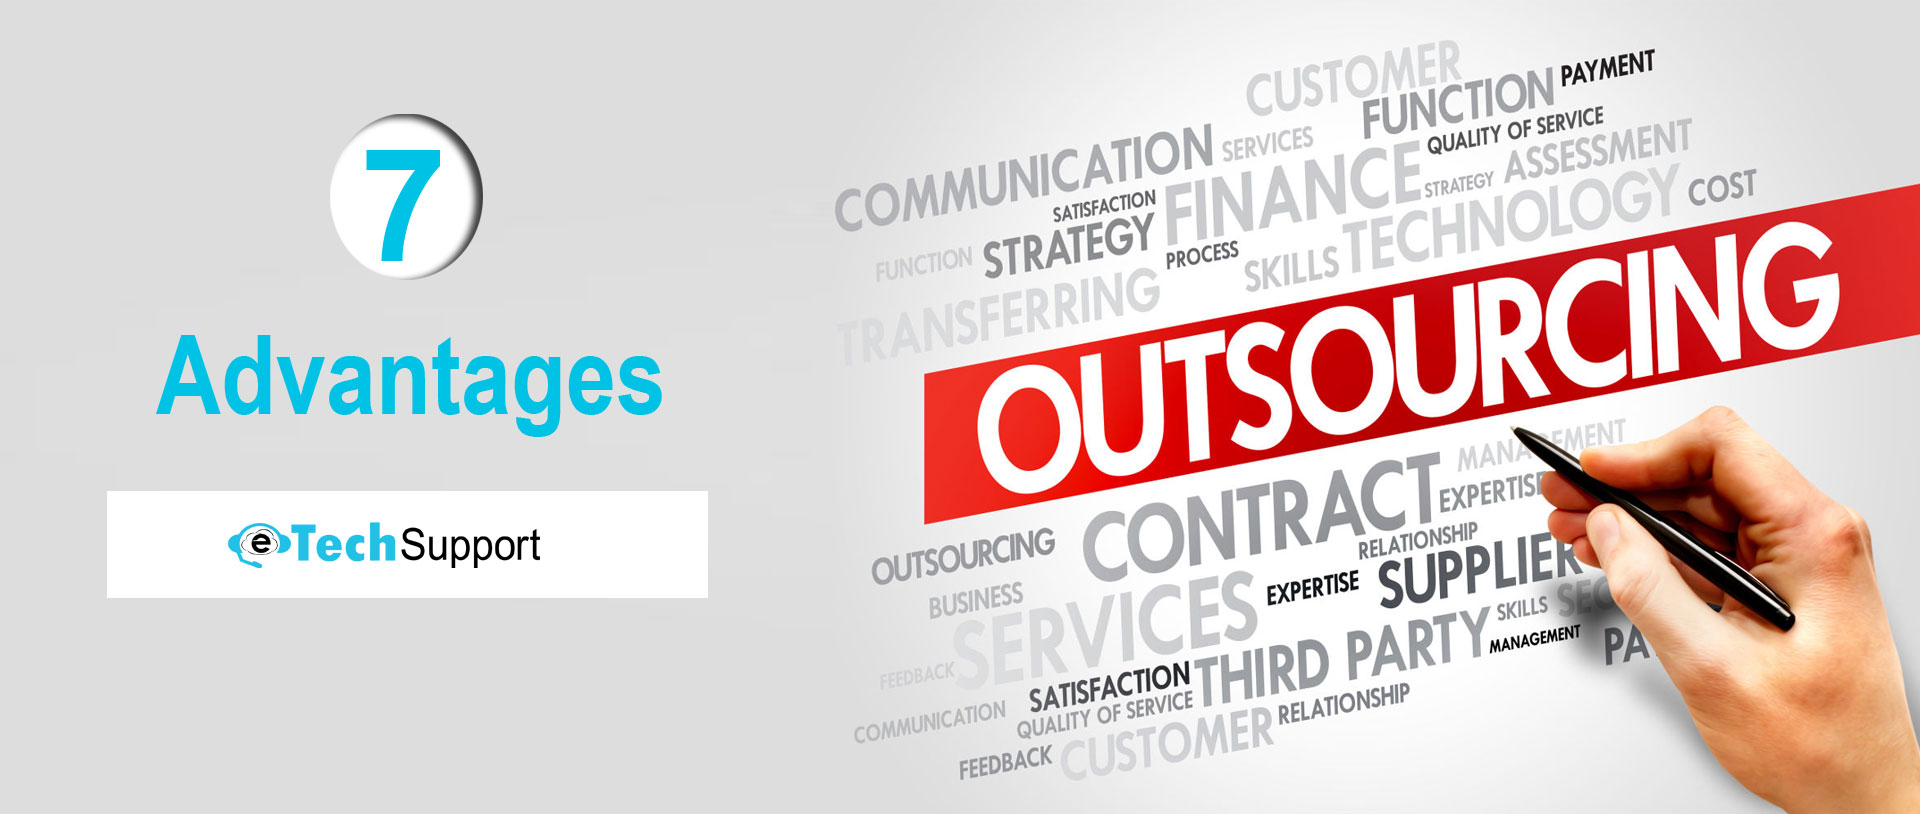 What are the 7 advantages of Outsourcing?